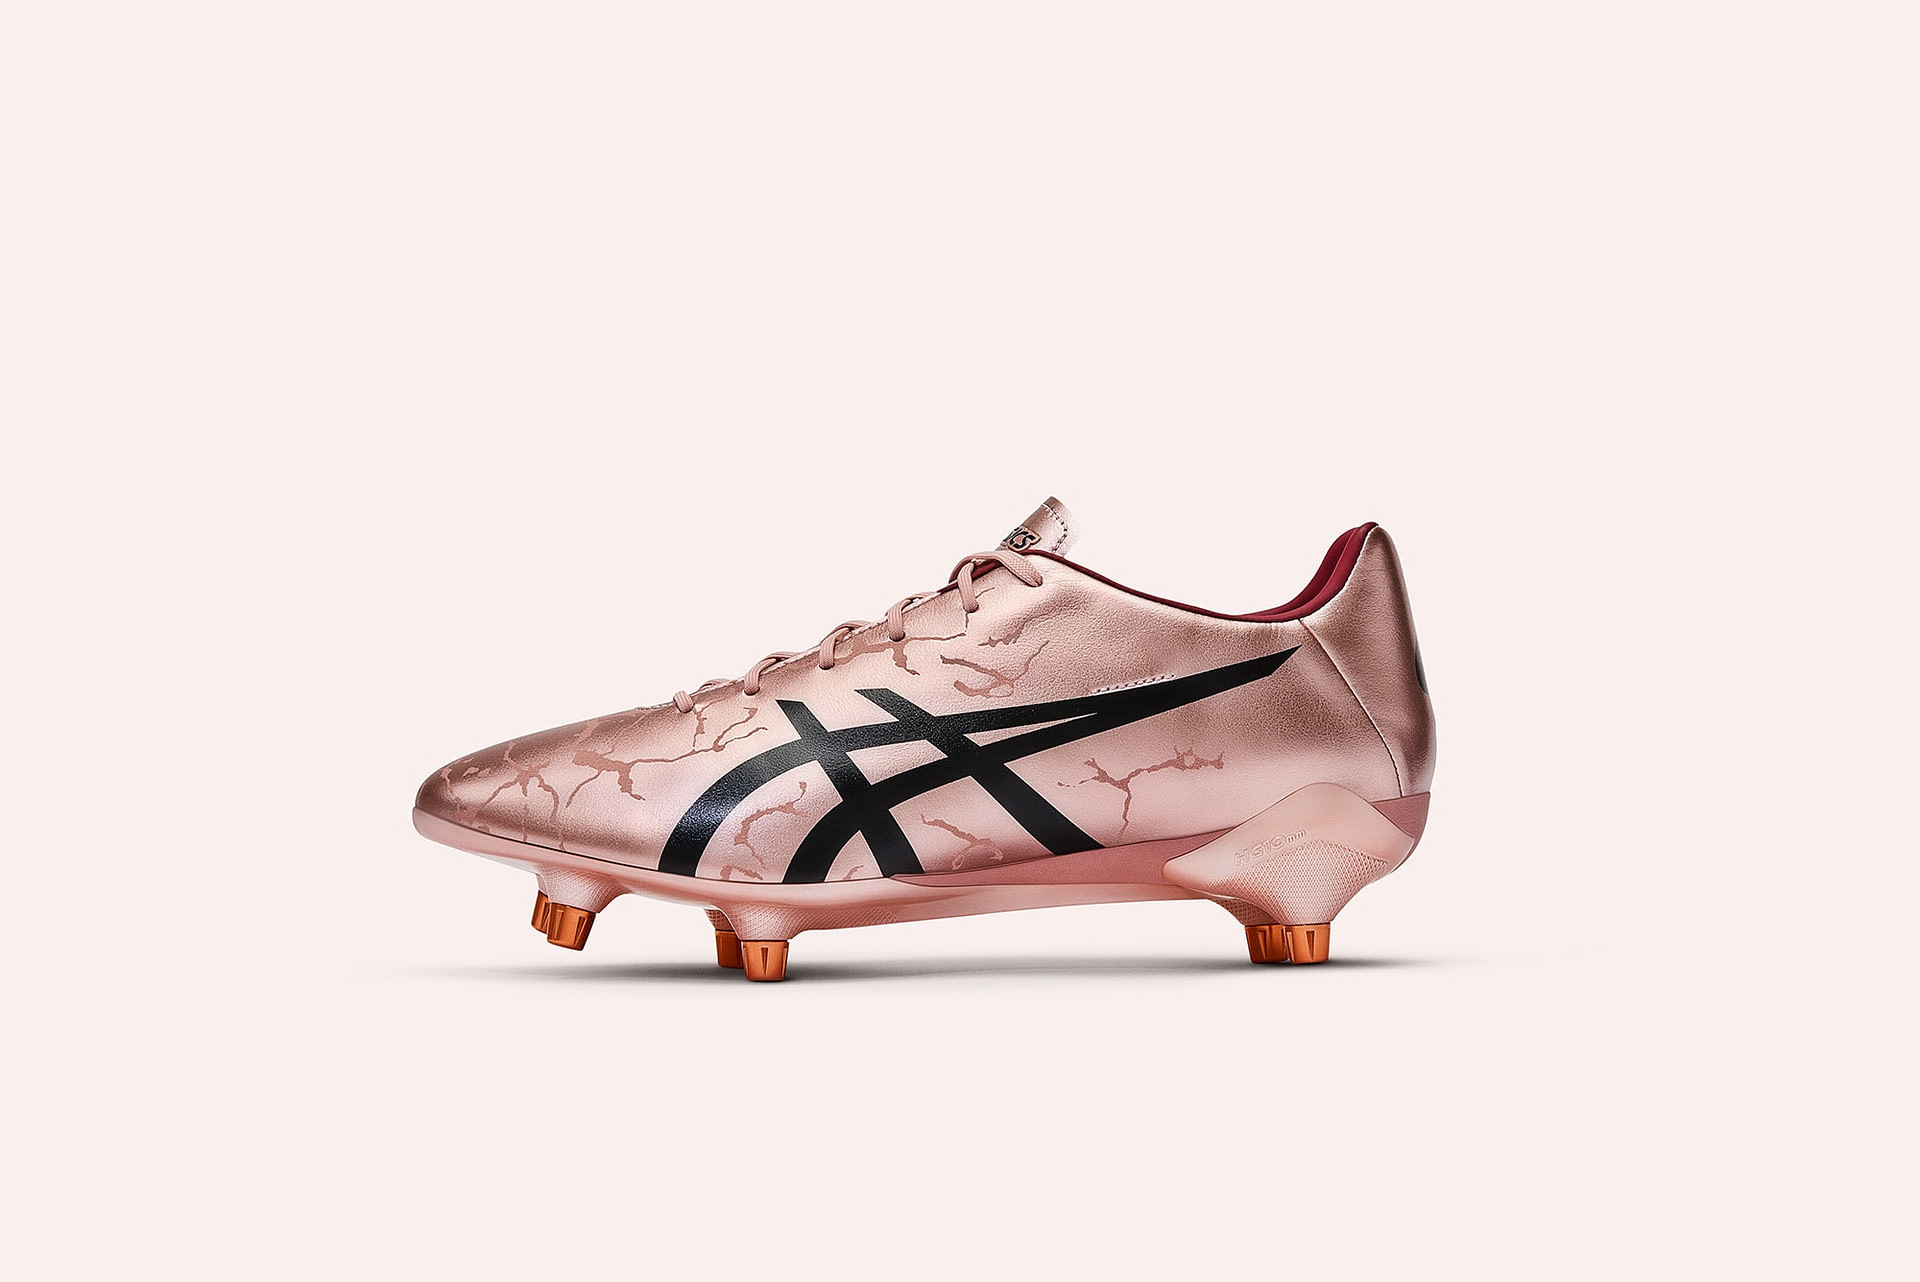 Limited-Edition ASICS Menace 3 SG celebrating the 2019 Rugby World Cup to be held in Japan 2019